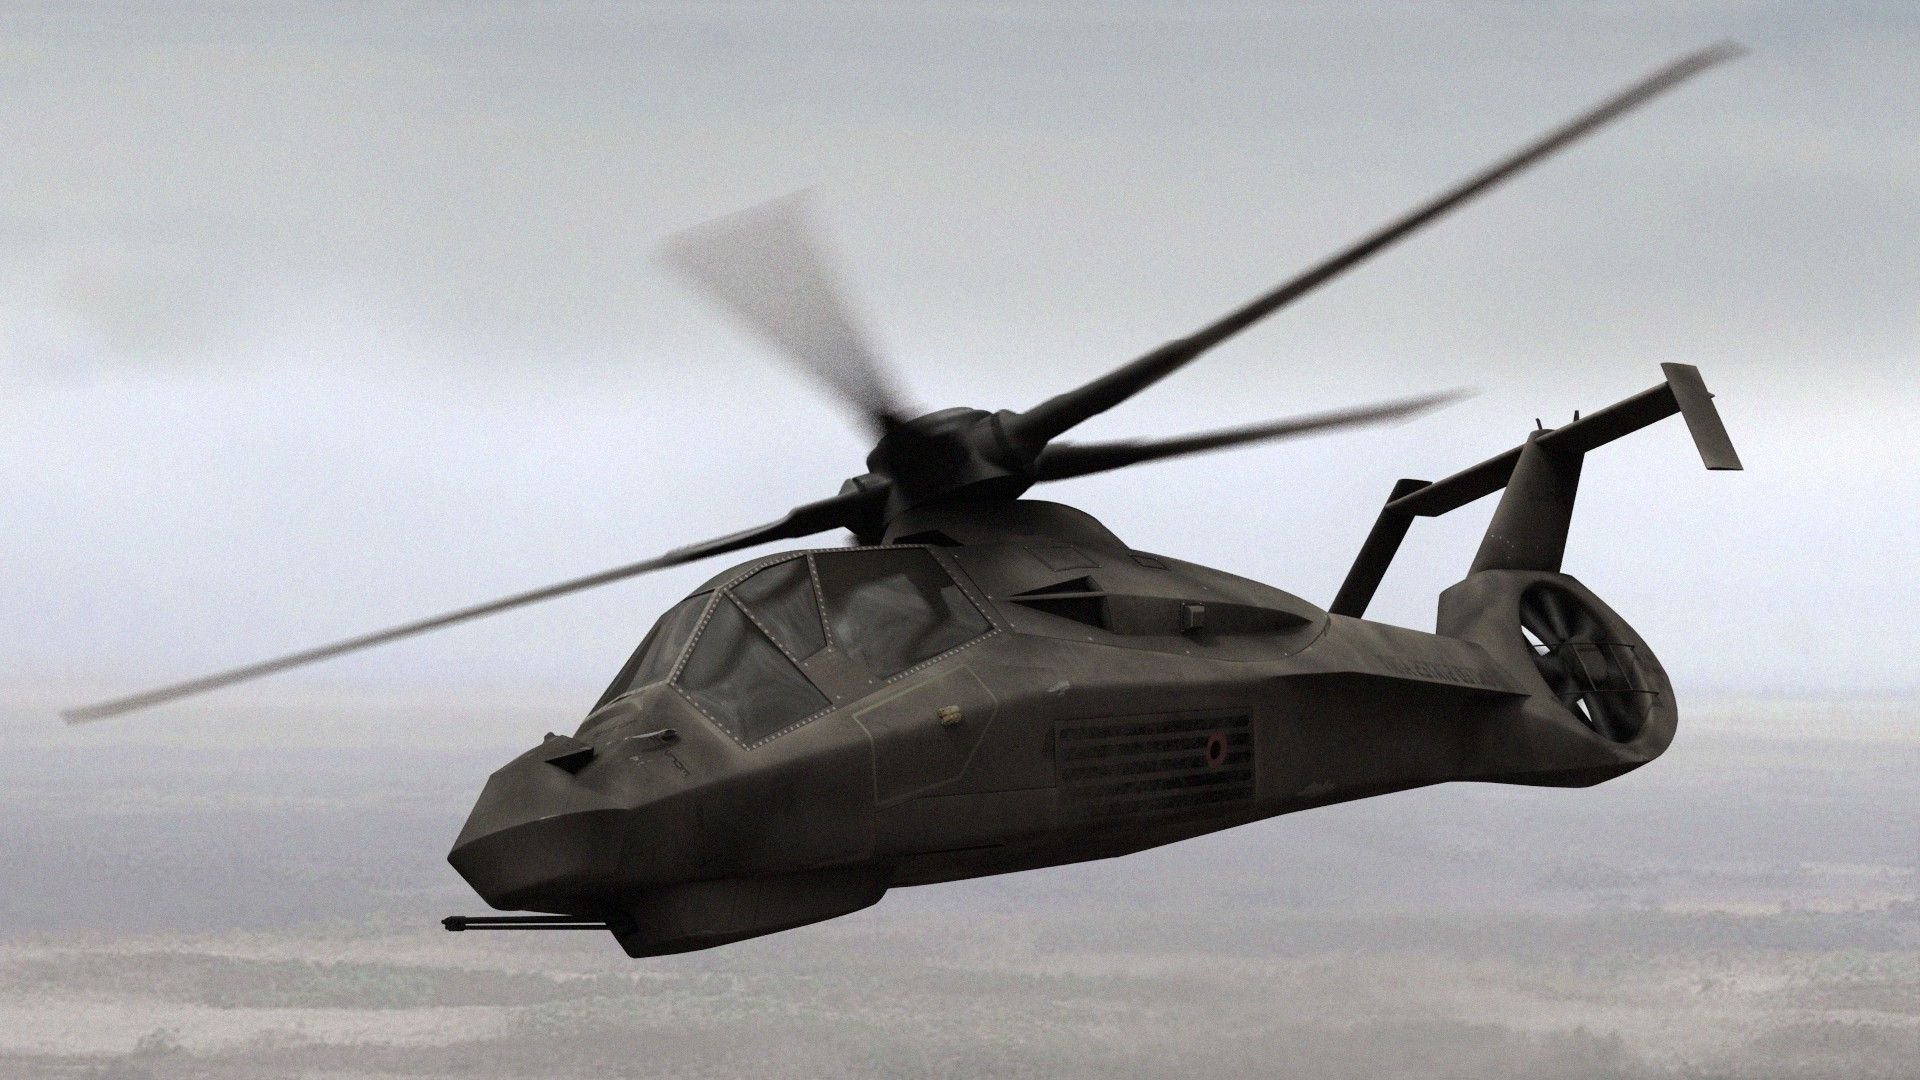 Boeing-Sikorsky RAH-66 Comanche helicopter